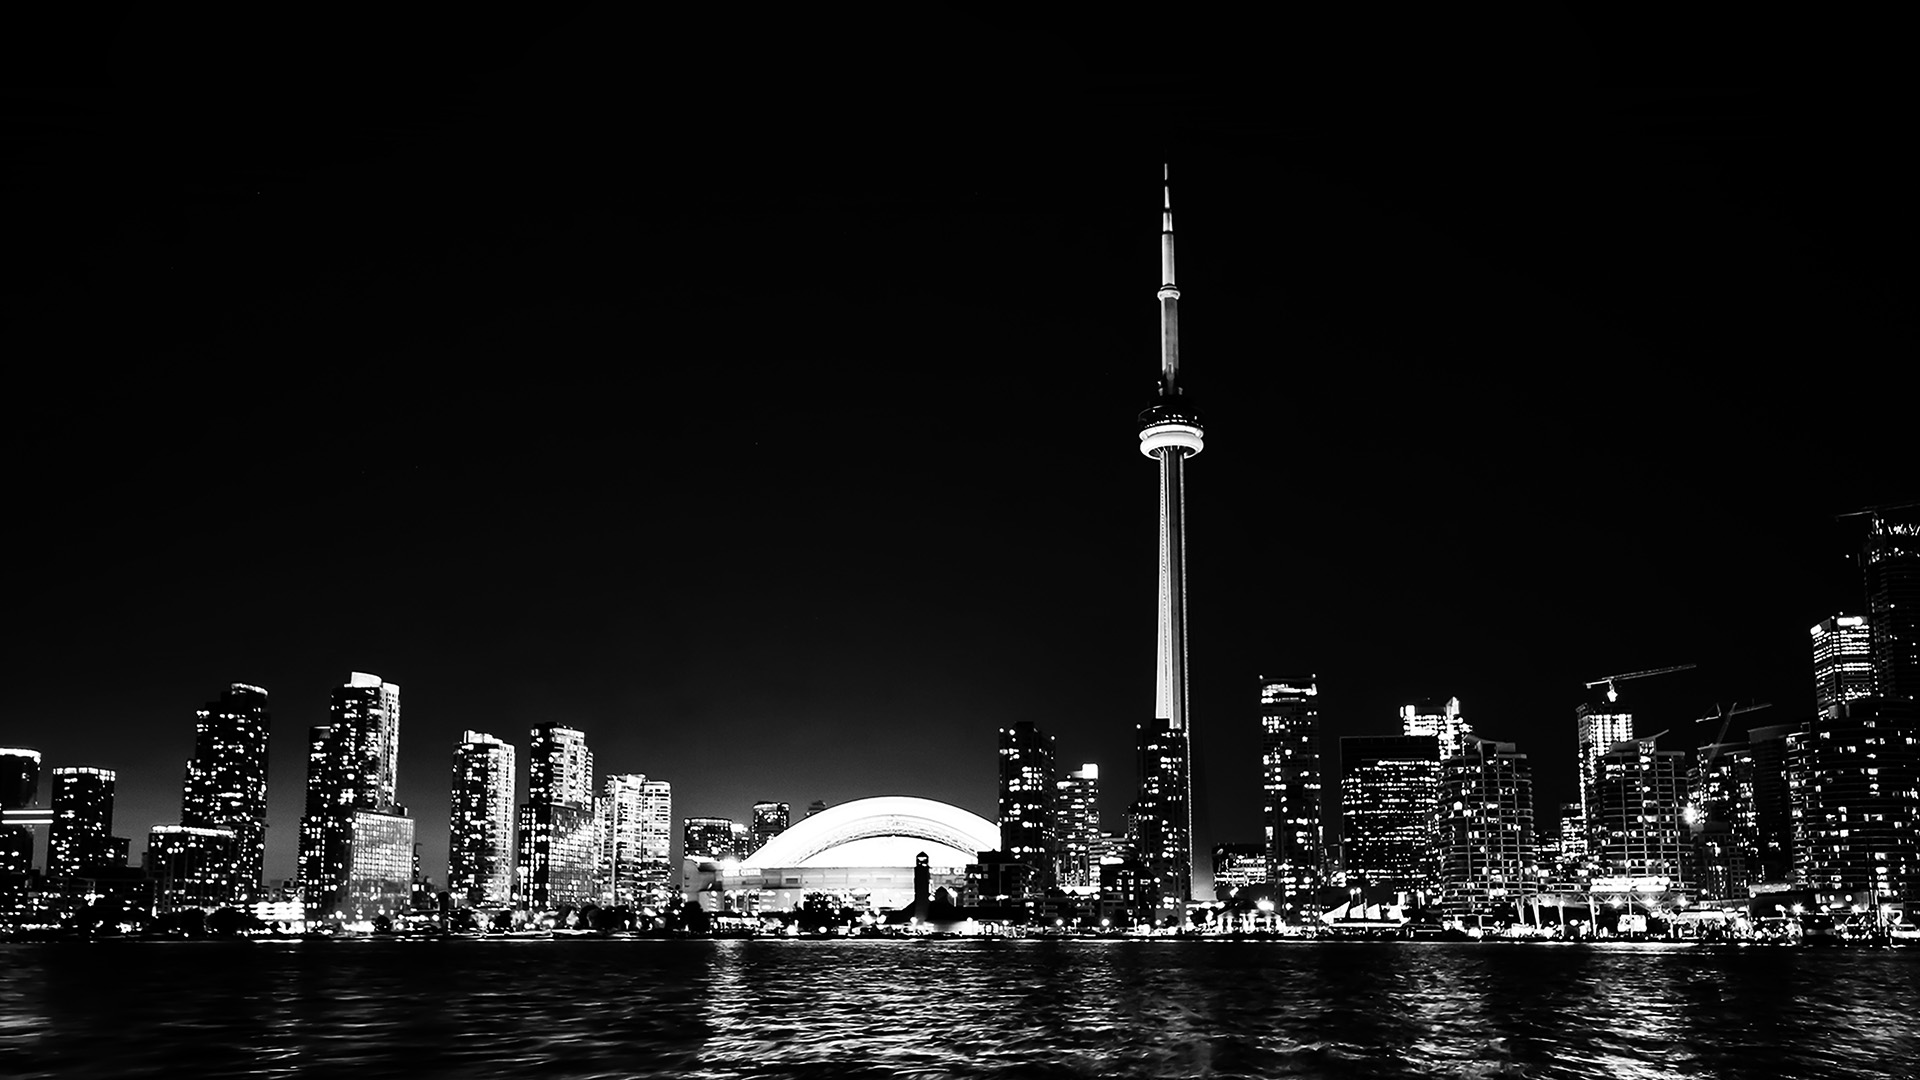 Disney Christmas Hd Wallpaper Mt45 Toronto City Night Missing Tower Dark Cityview Bw